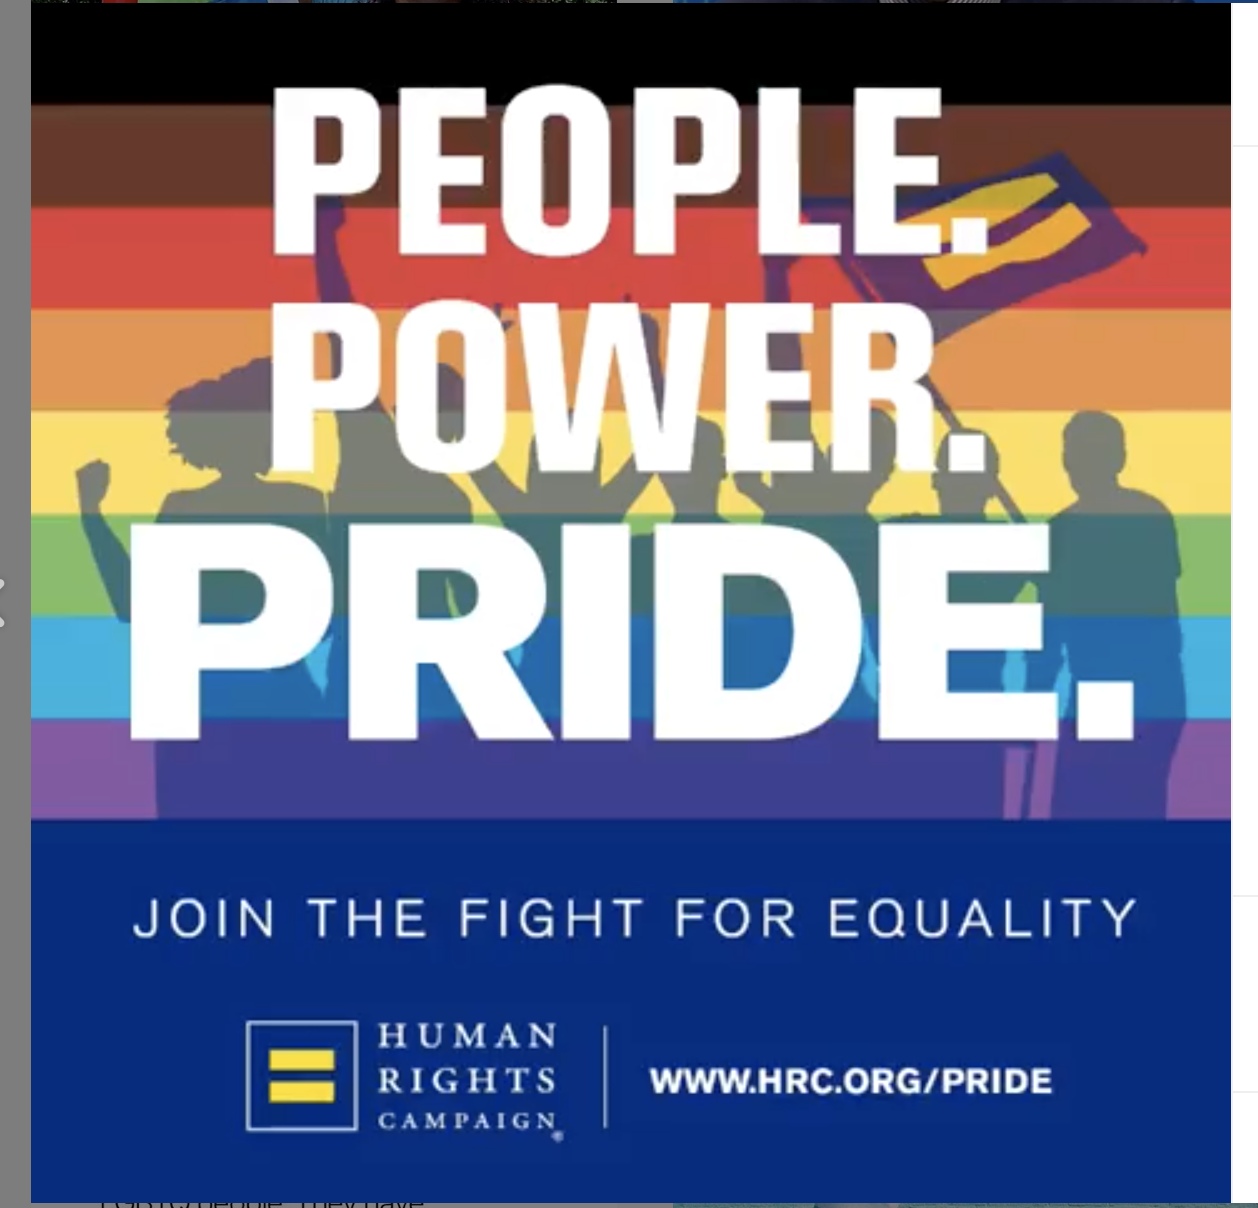 HUMAN RIGHTS CAMPAIGN - America's largest civil rights organisation fighting for the equality and visibility of the LGBTQ+ community